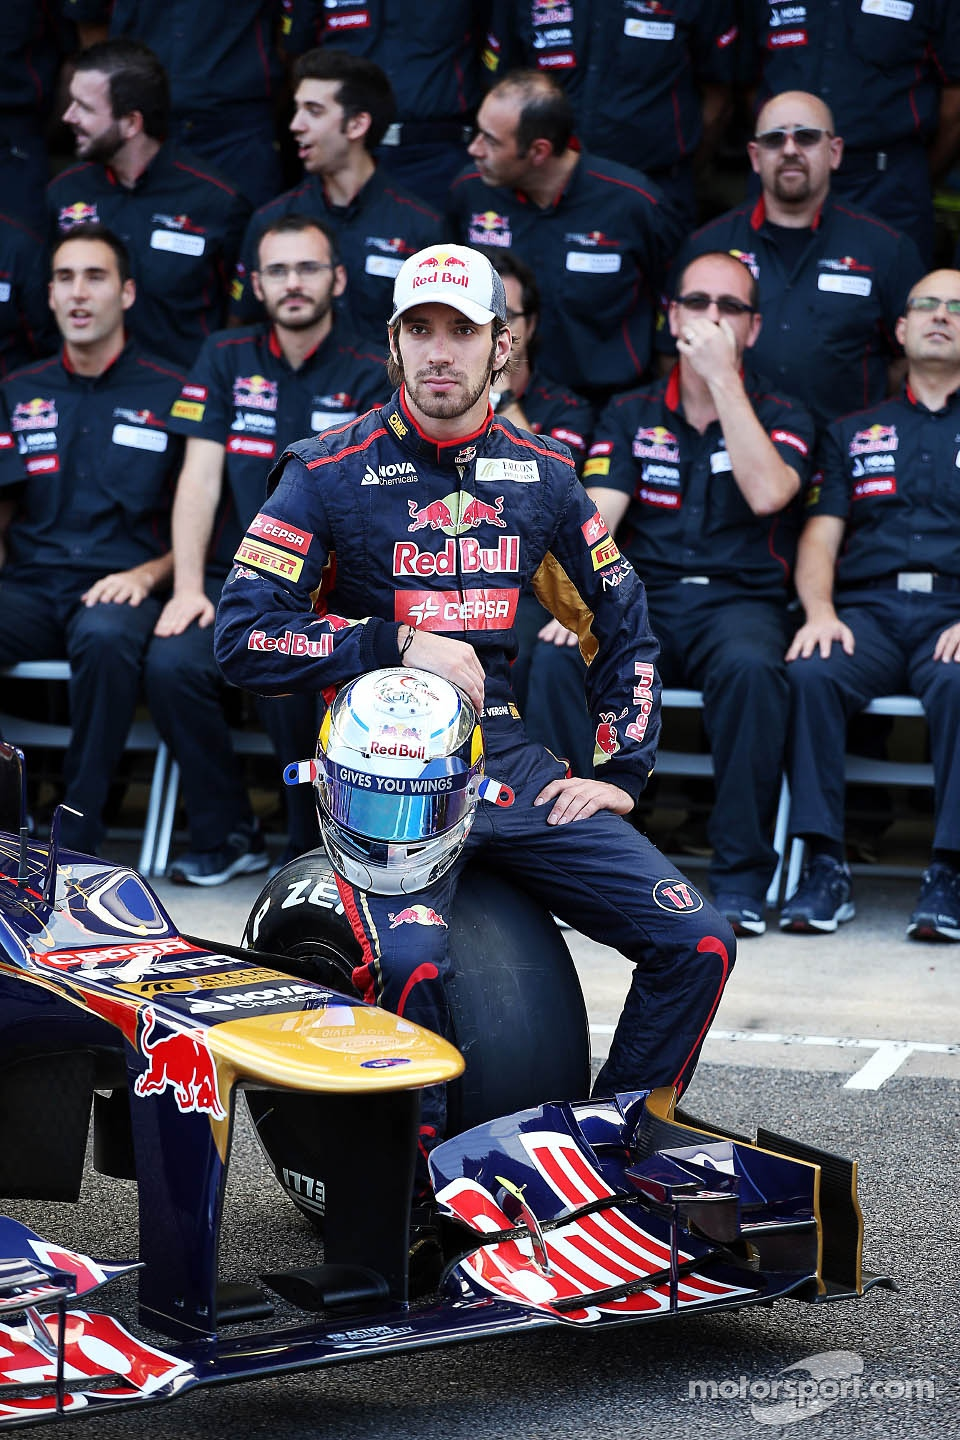 Jean-Eric Vergne, Scuderia Toro Rosso at a team photograph